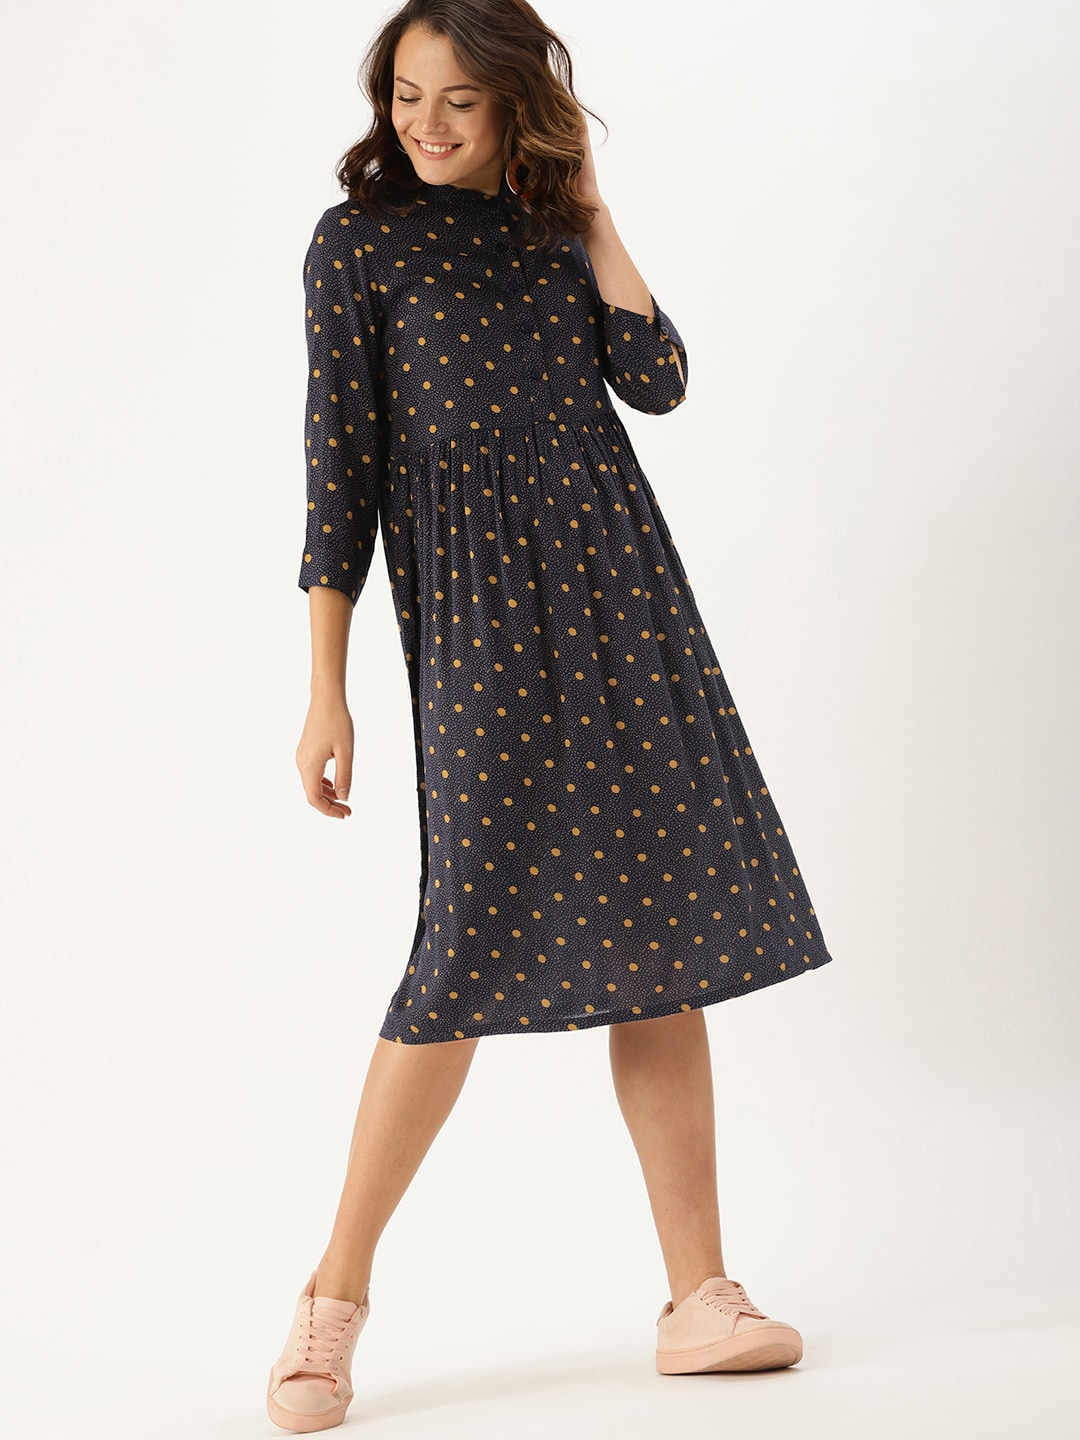 3244ca41f35 Polka Dots Dresses - Buy Polka Dots Dresses online in India - Myntra